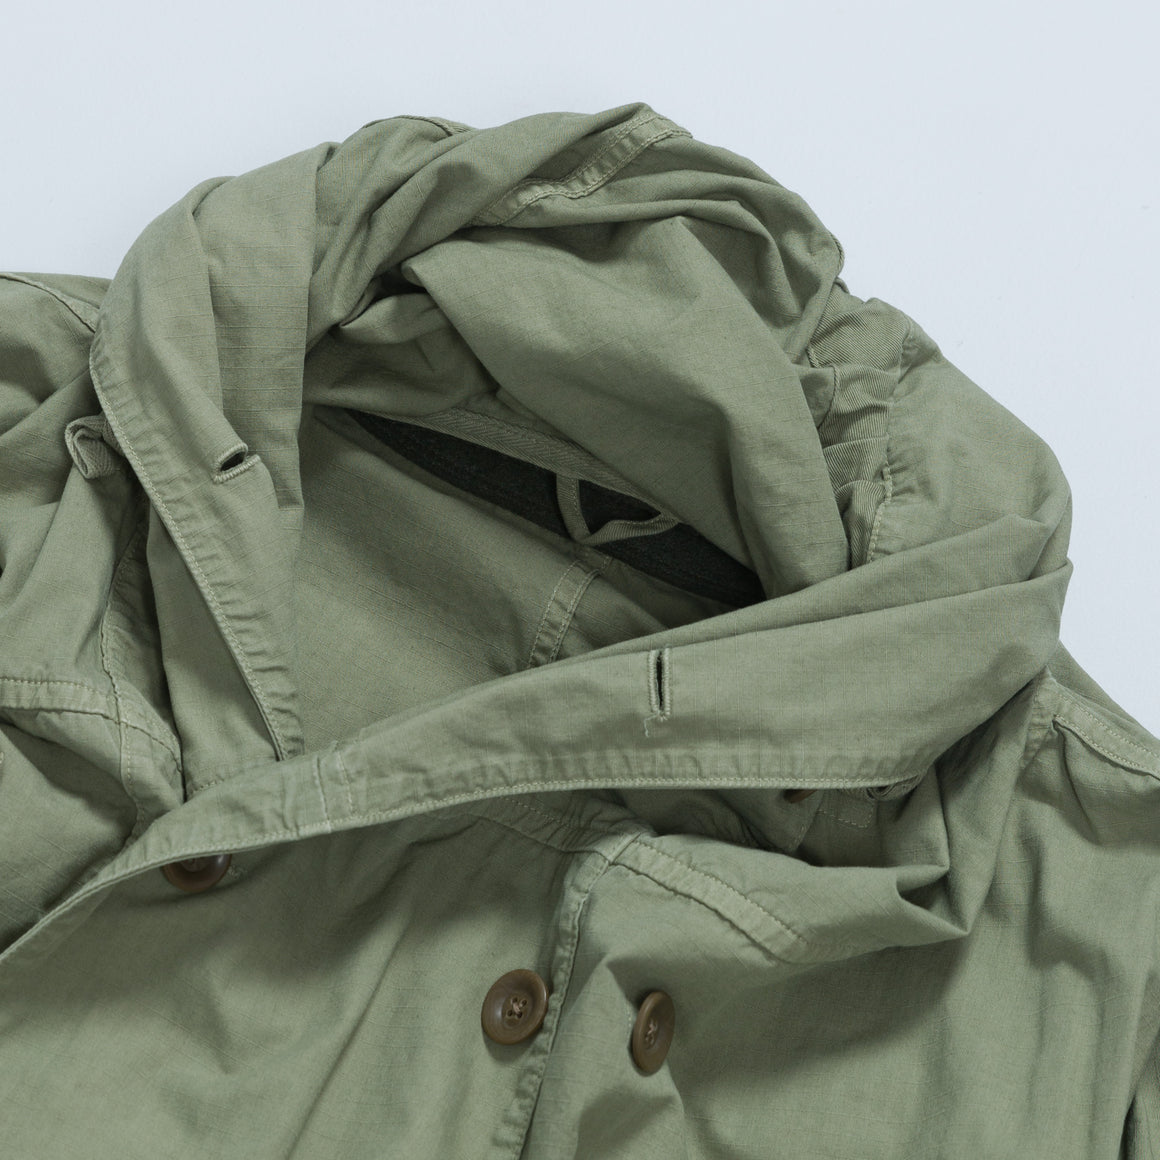 Rip Stop Army Ring Coat - Khaki - Up There